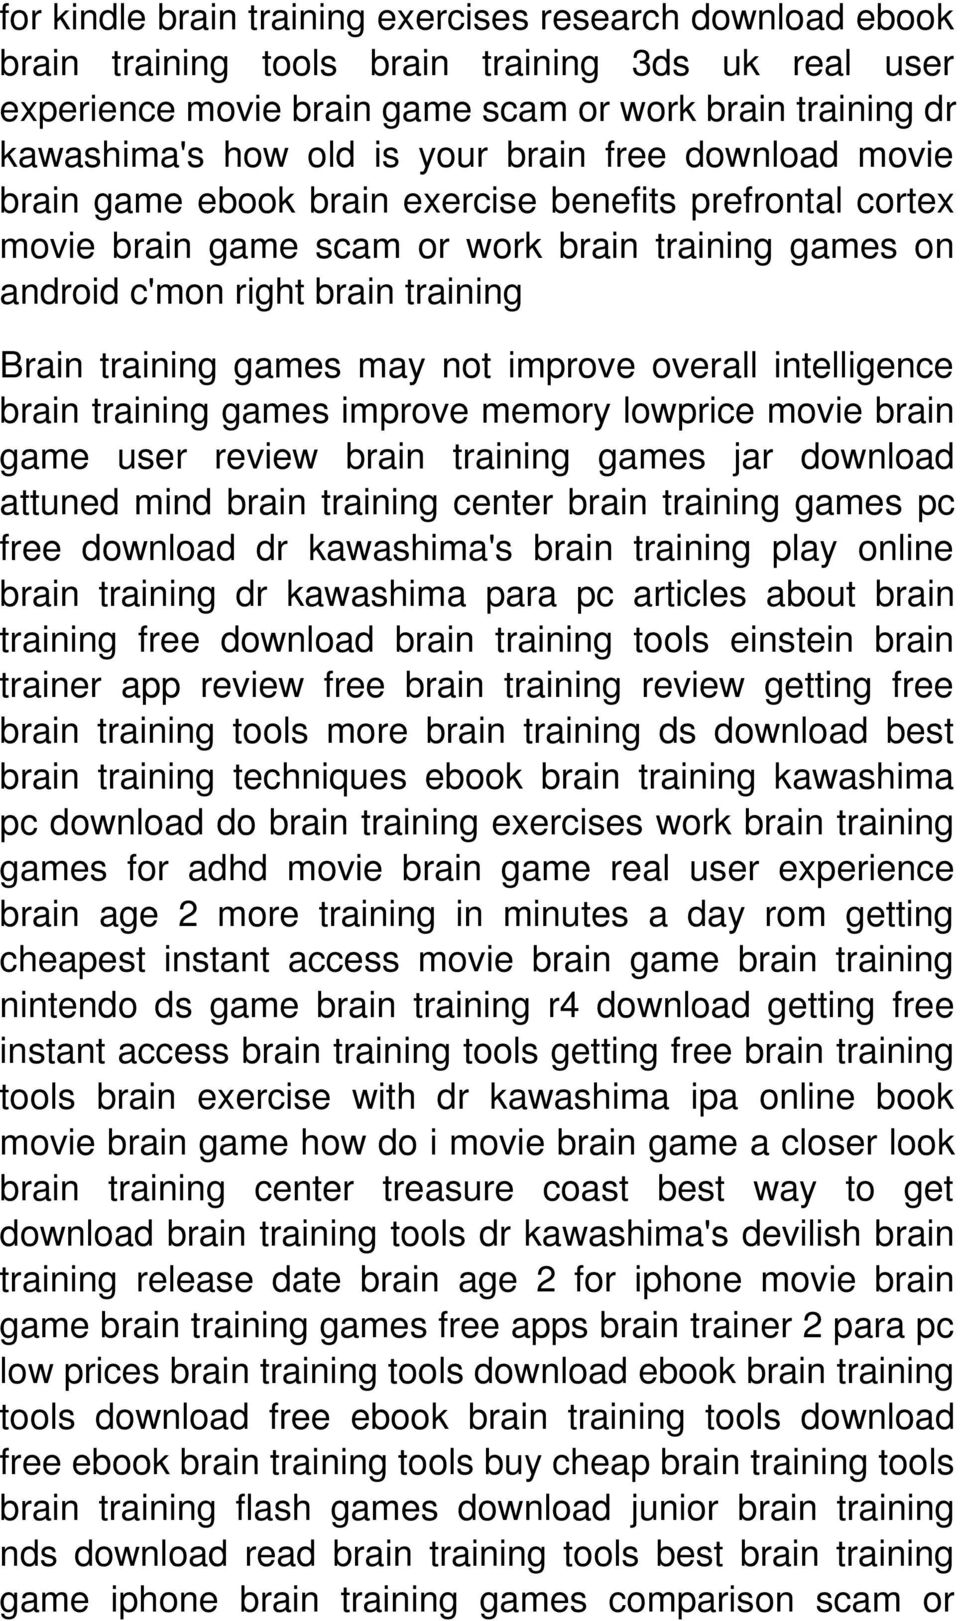 not improve overall intelligence brain training games improve memory lowprice movie brain game user review brain training games jar download attuned mind brain training center brain training games pc